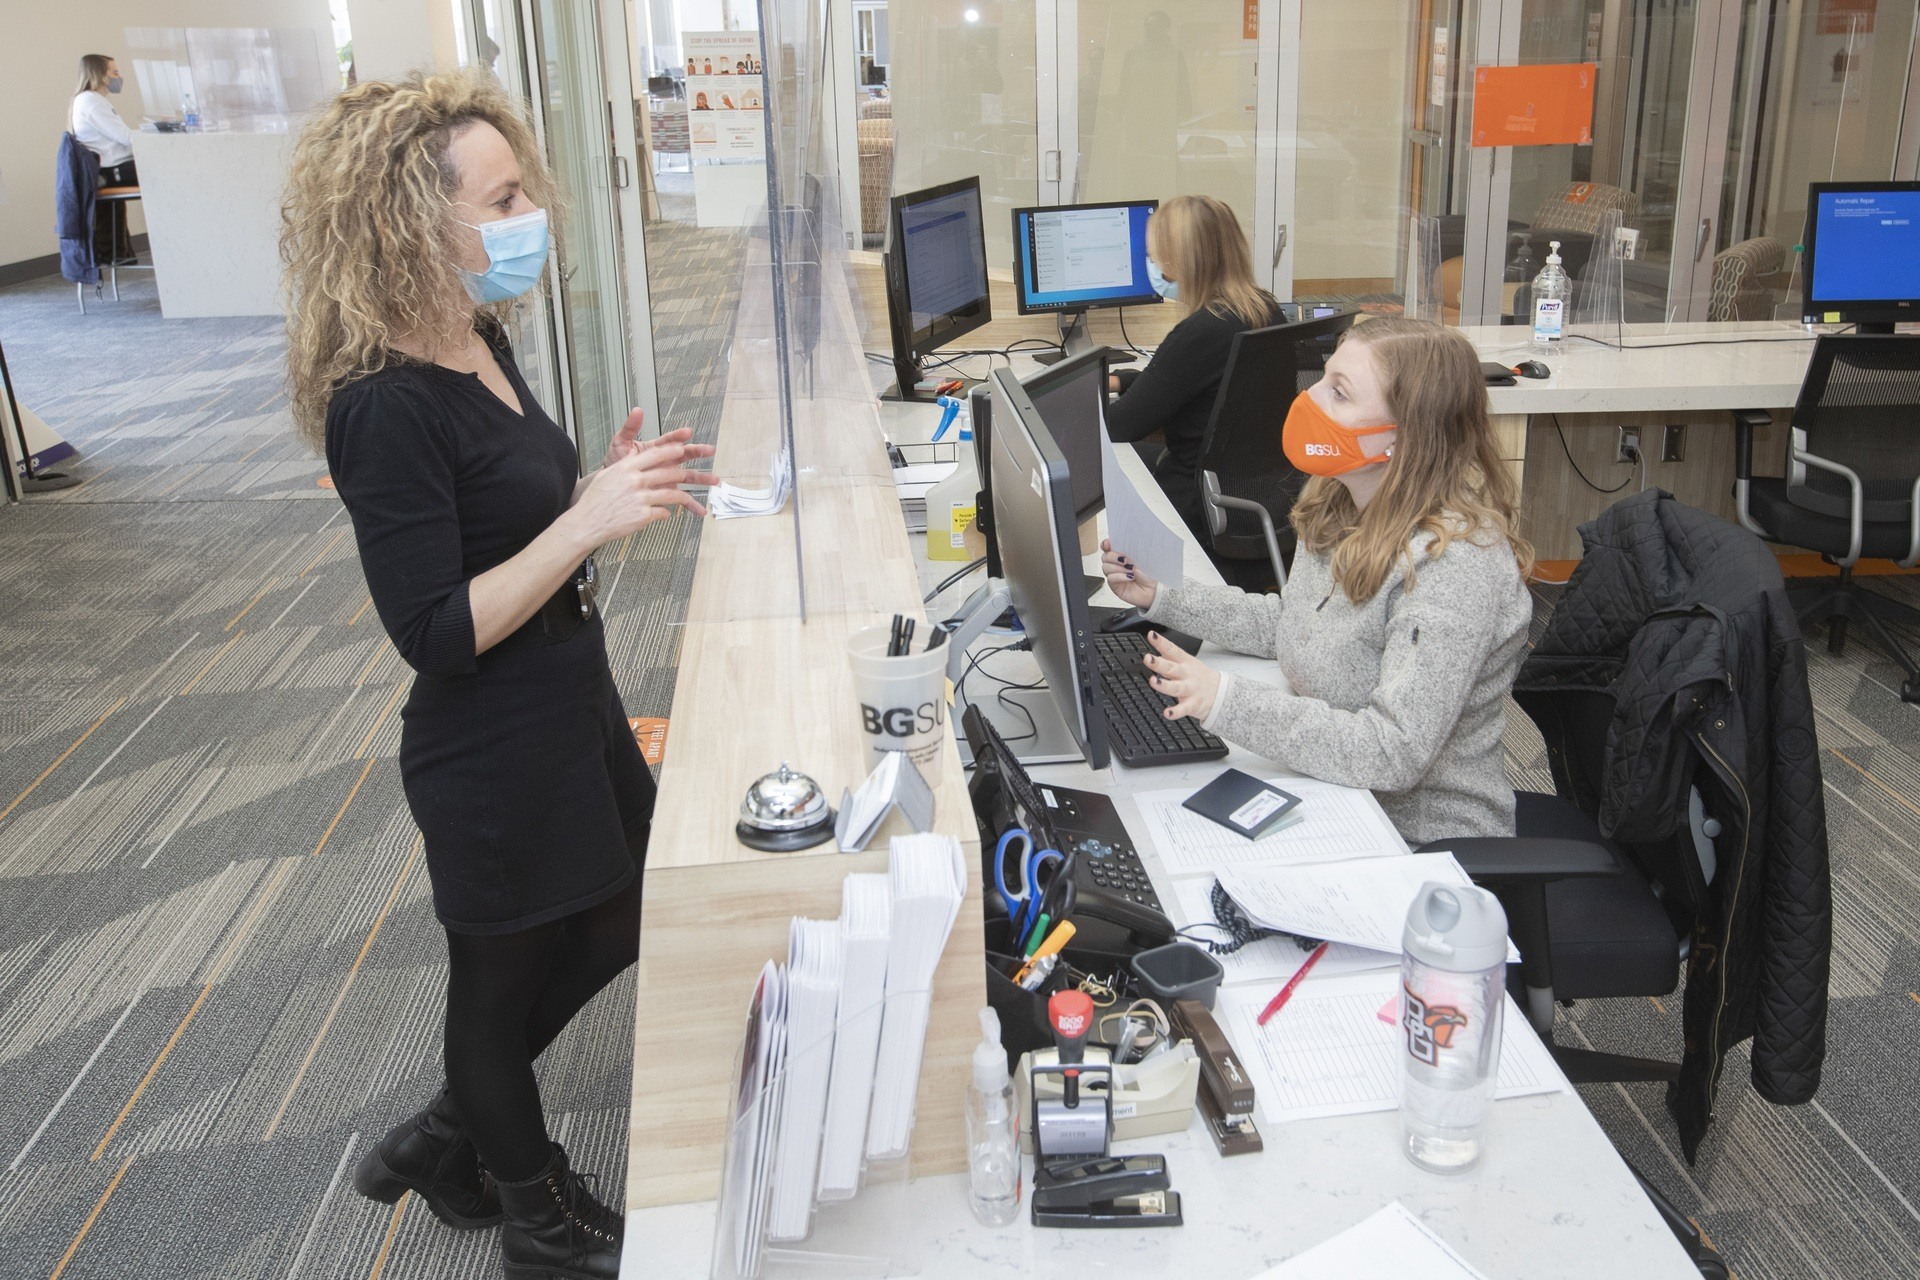 A female wearing a facemask speaks through plex-glass to a masked female employee at the BGSU Career Center.